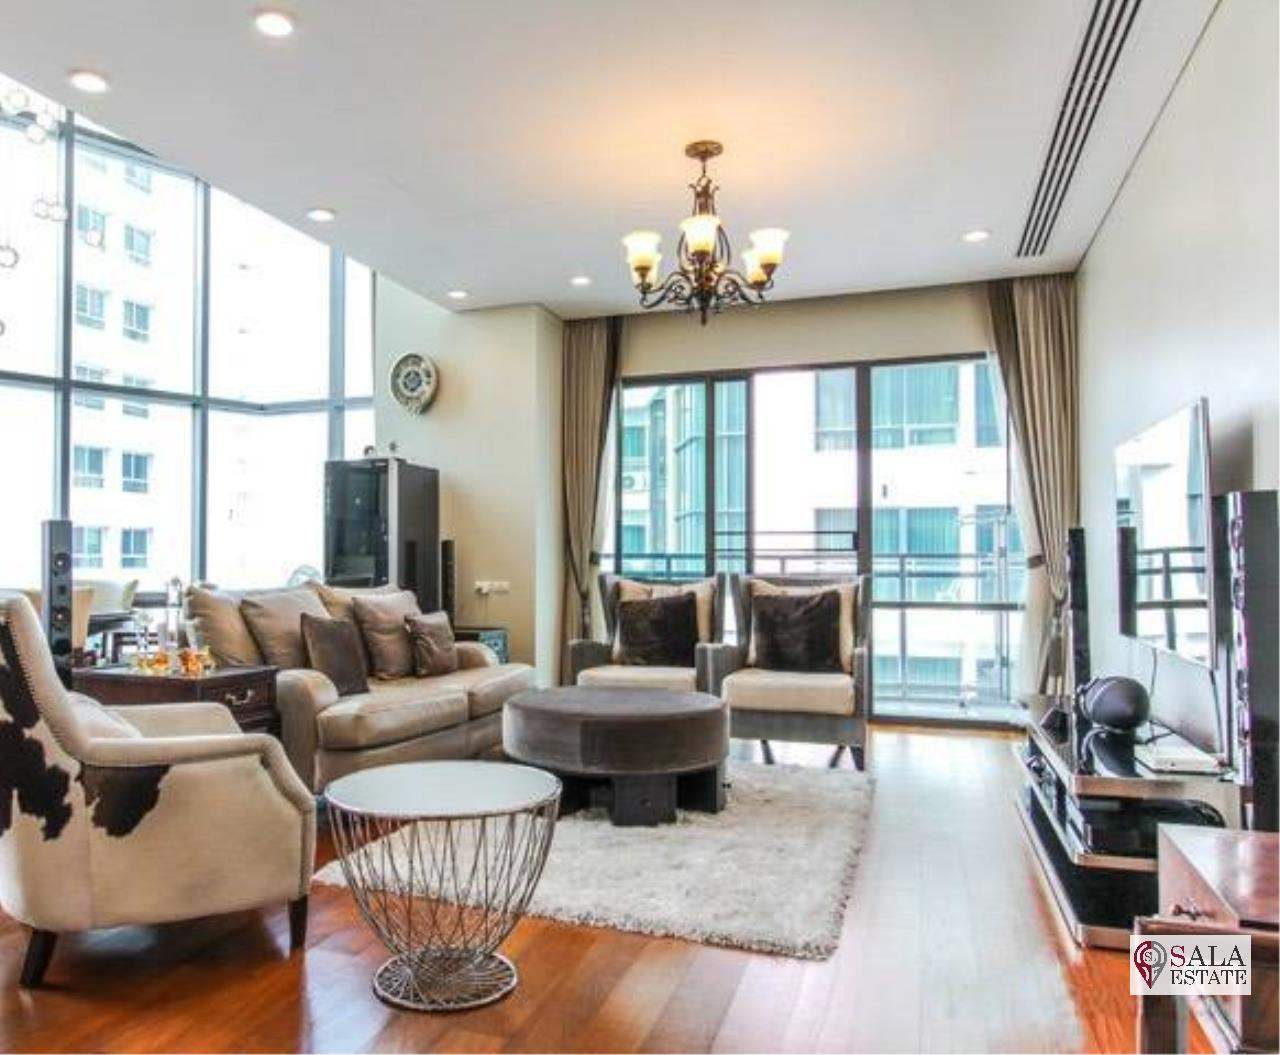 SALA ESTATE Agency's (FOR RENT) BRIGHT SUKHUMVIT 24 - BTS PHROM PHONG, DUPLEX TYPE,3 BEDROOMS 3 BATHROOMS, FULLY FURNISHED,CITY VIEW,HIGH FLOOR 1